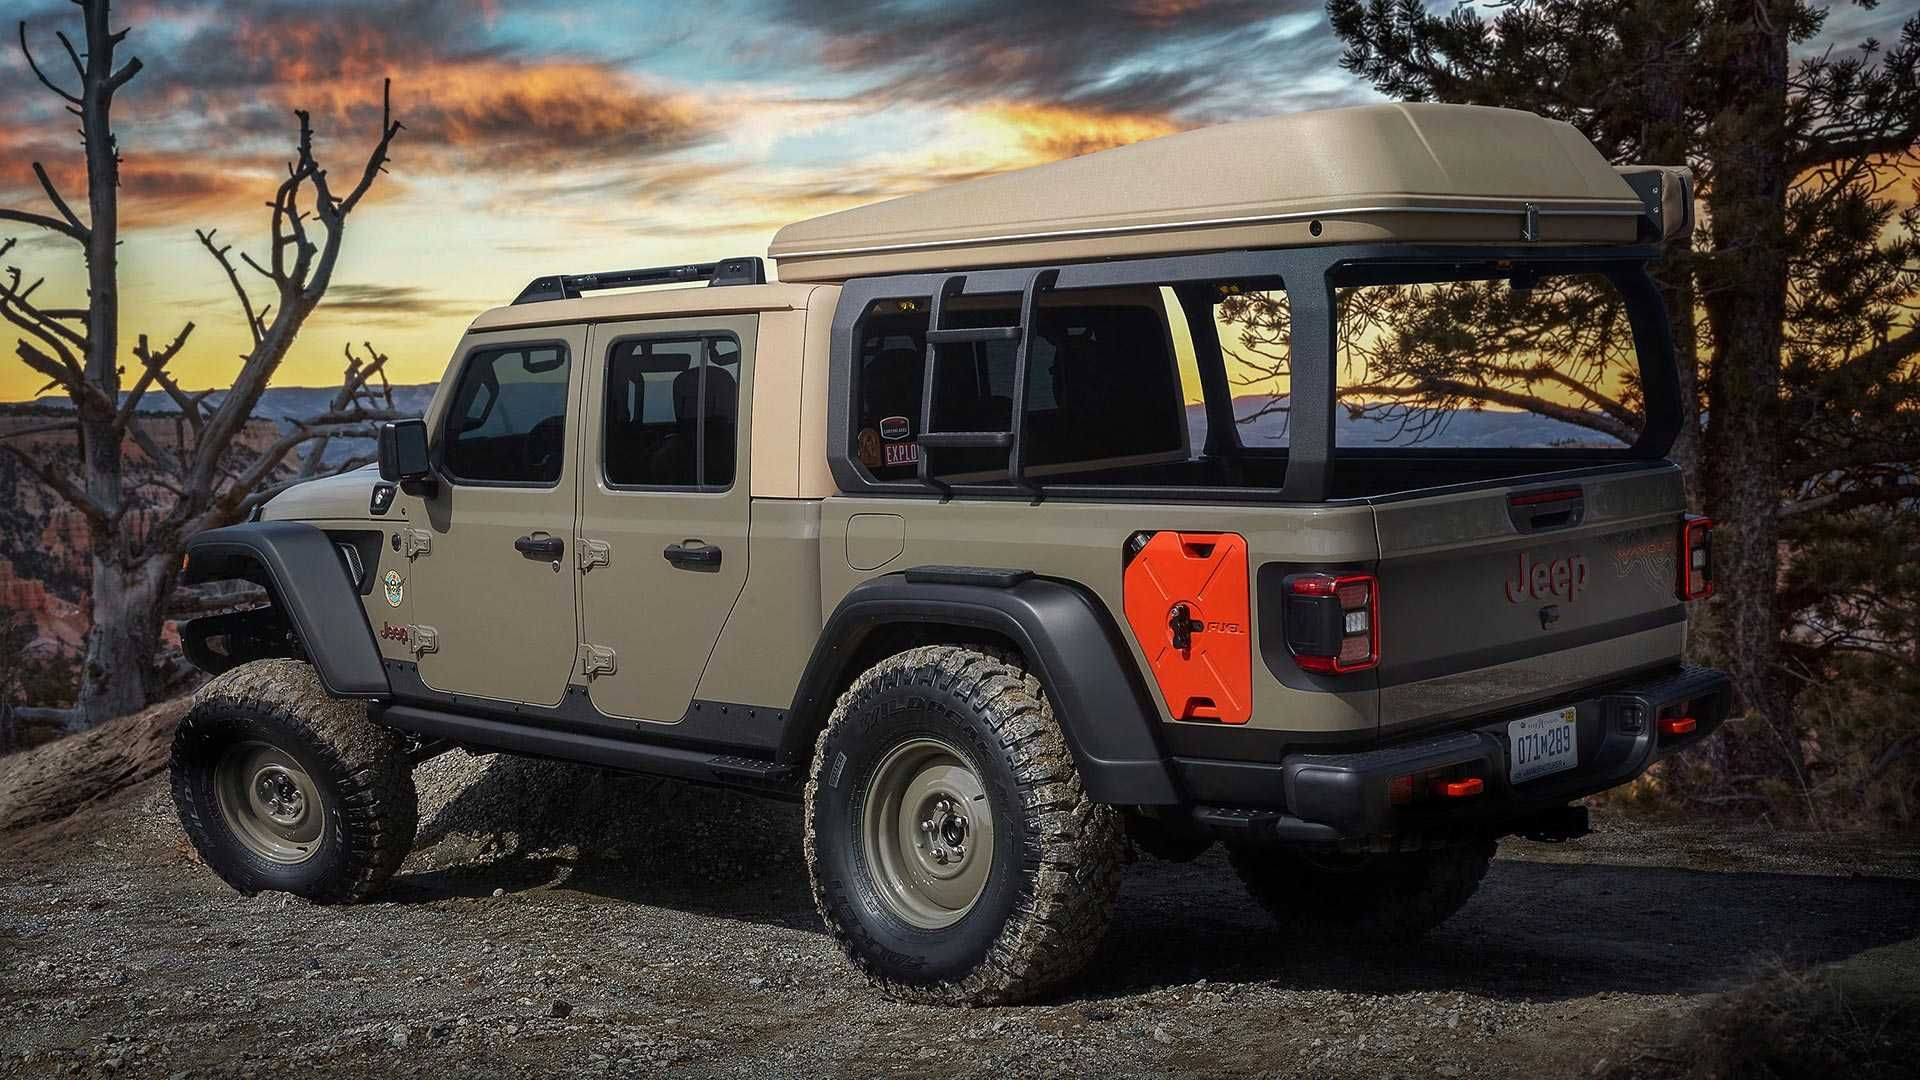 Jeep Gladiator Wayout Is A Camping Pickup Truck With A Tent Jeep